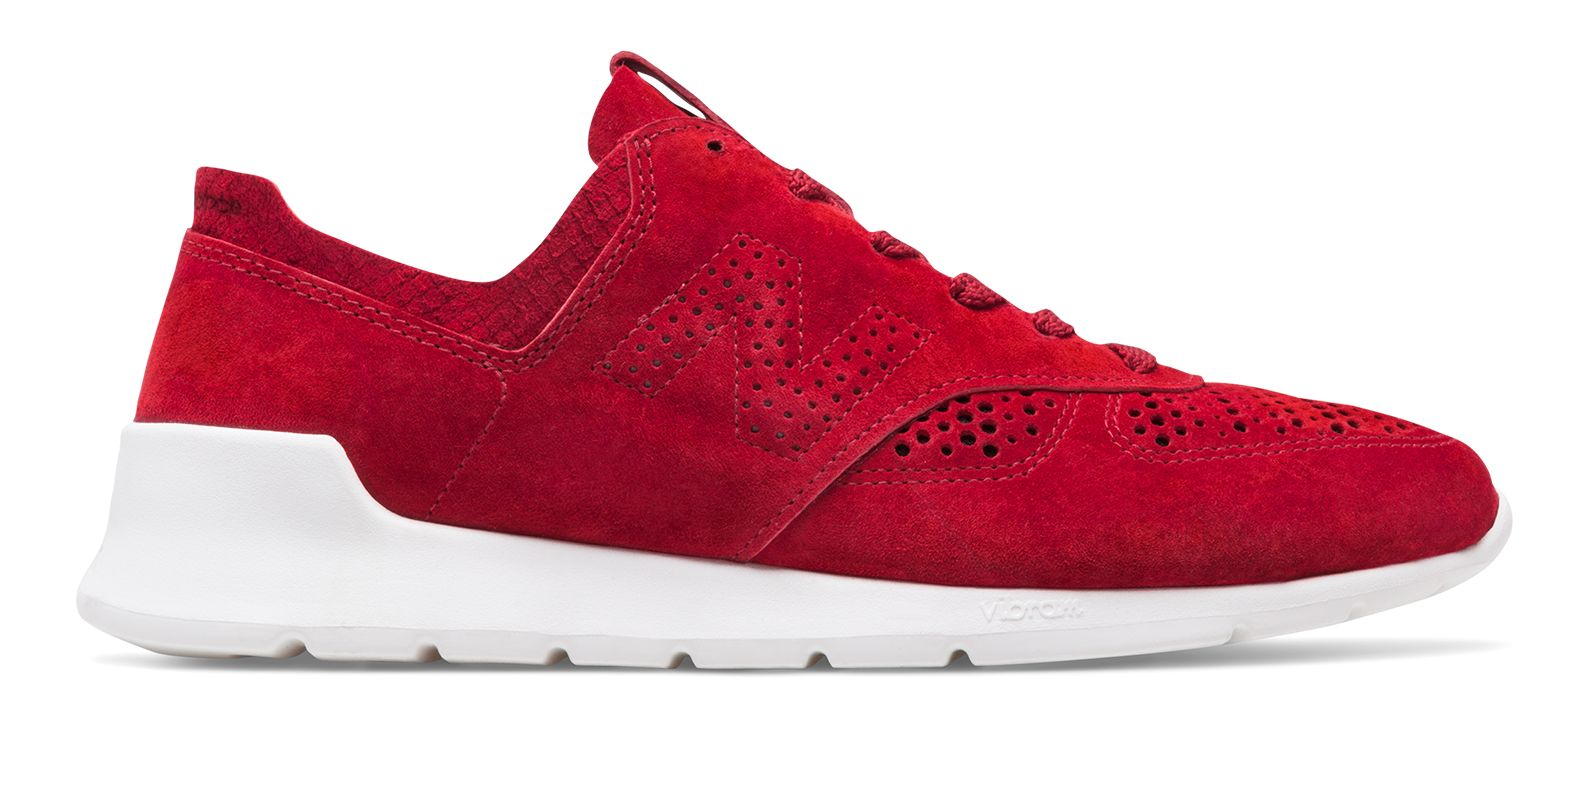 NB 1978 Made in the USA, Red